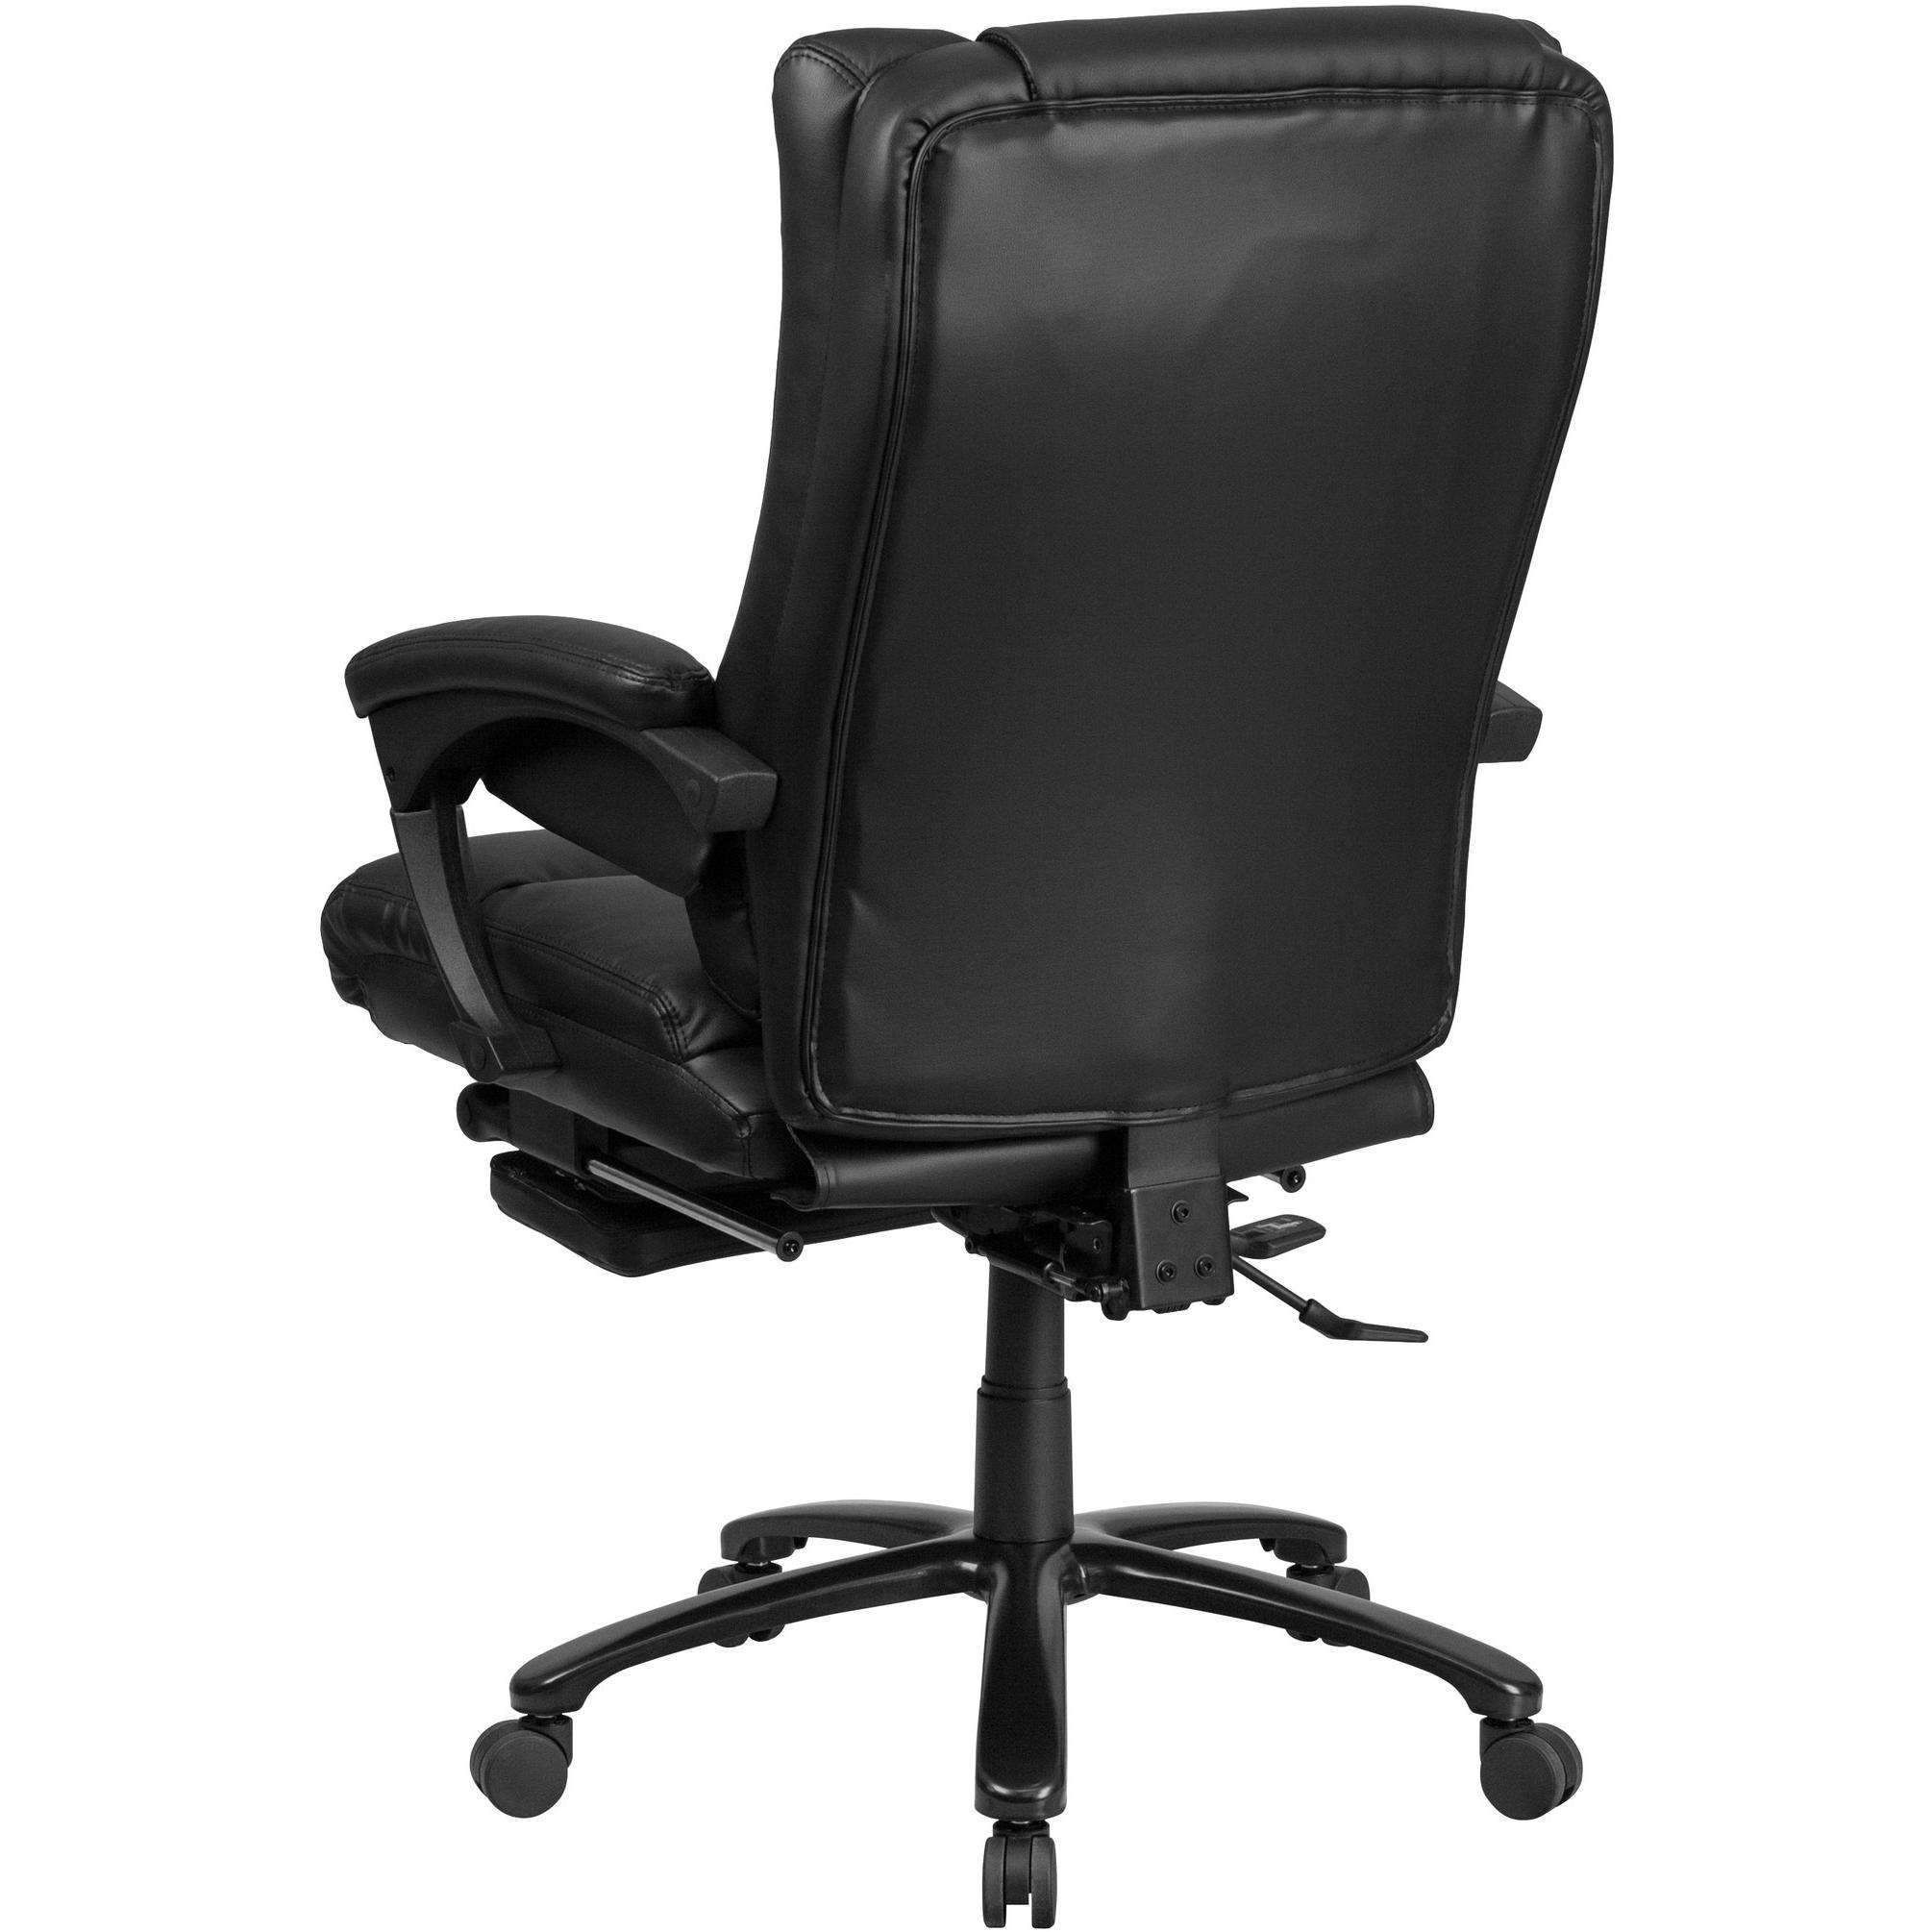 High Back Black Leather Executive Reclining Swivel Office Chair With Lumbar Support Office Chair Chair Comfy Leather Chair